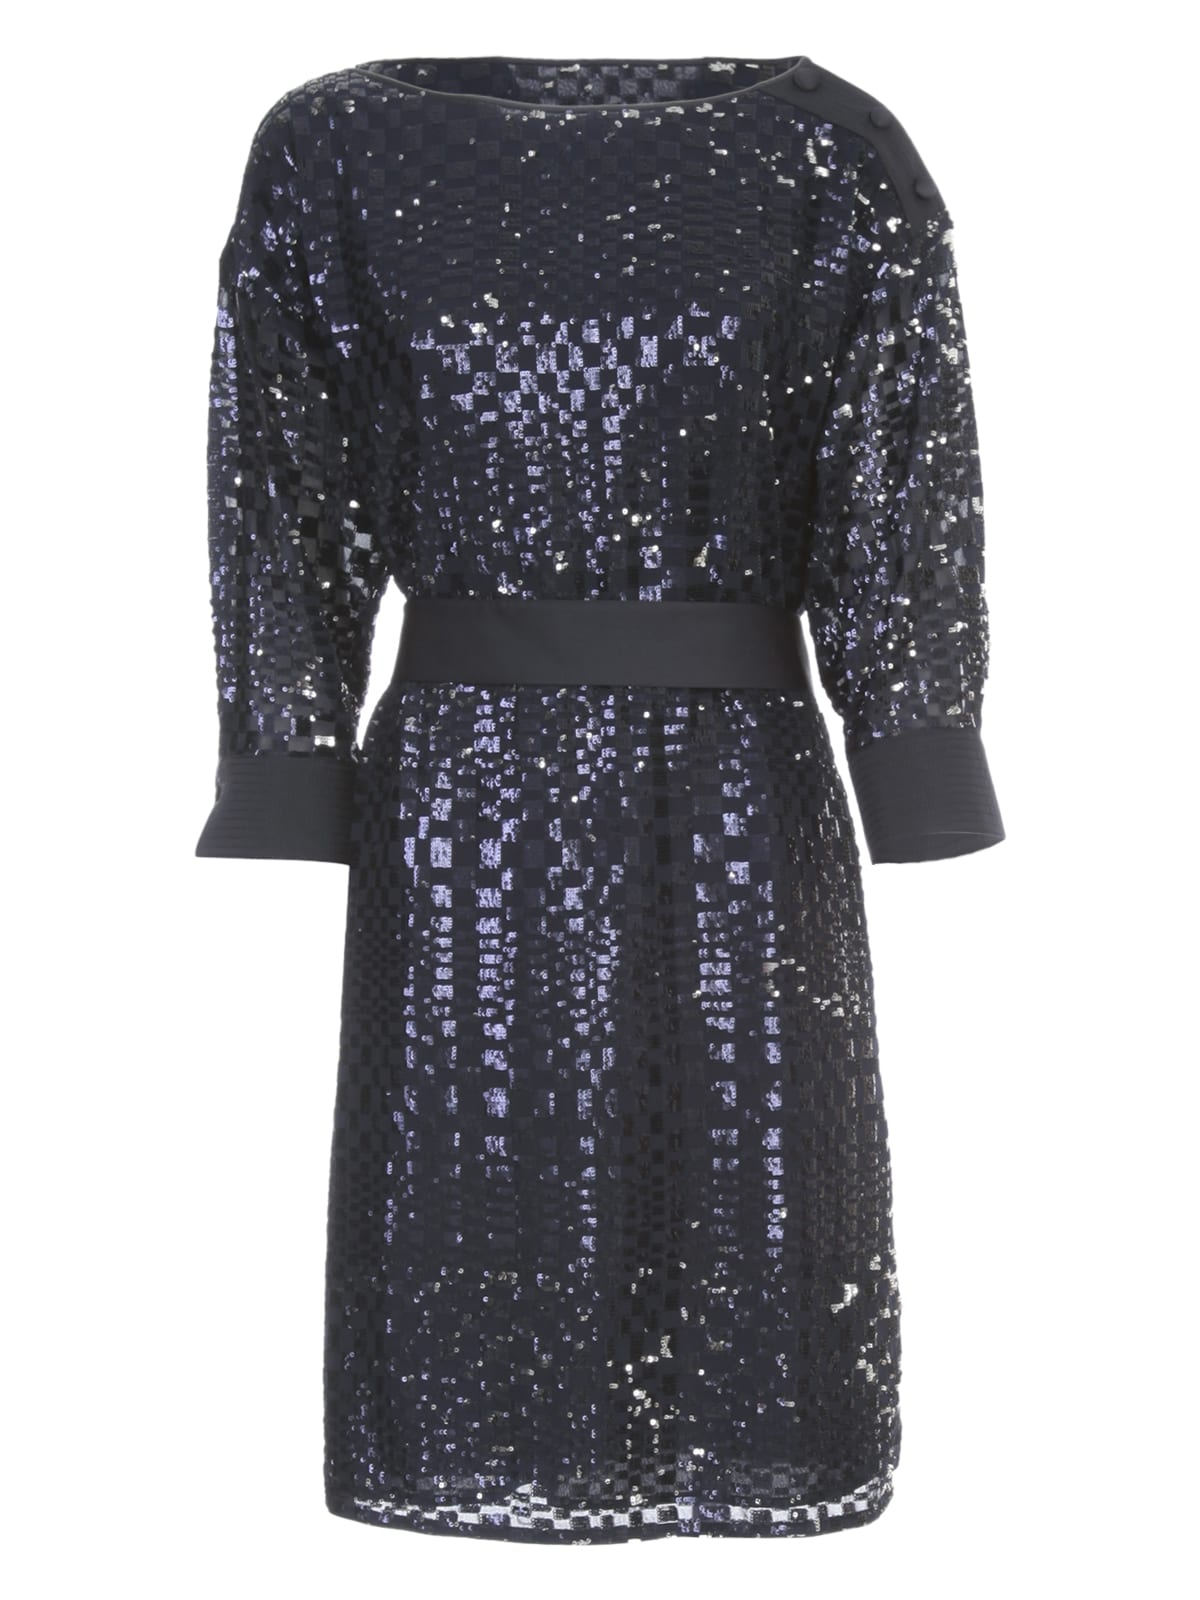 Buy Emporio Armani Dress L/s W/belt And Paillettes online, shop Emporio Armani with free shipping